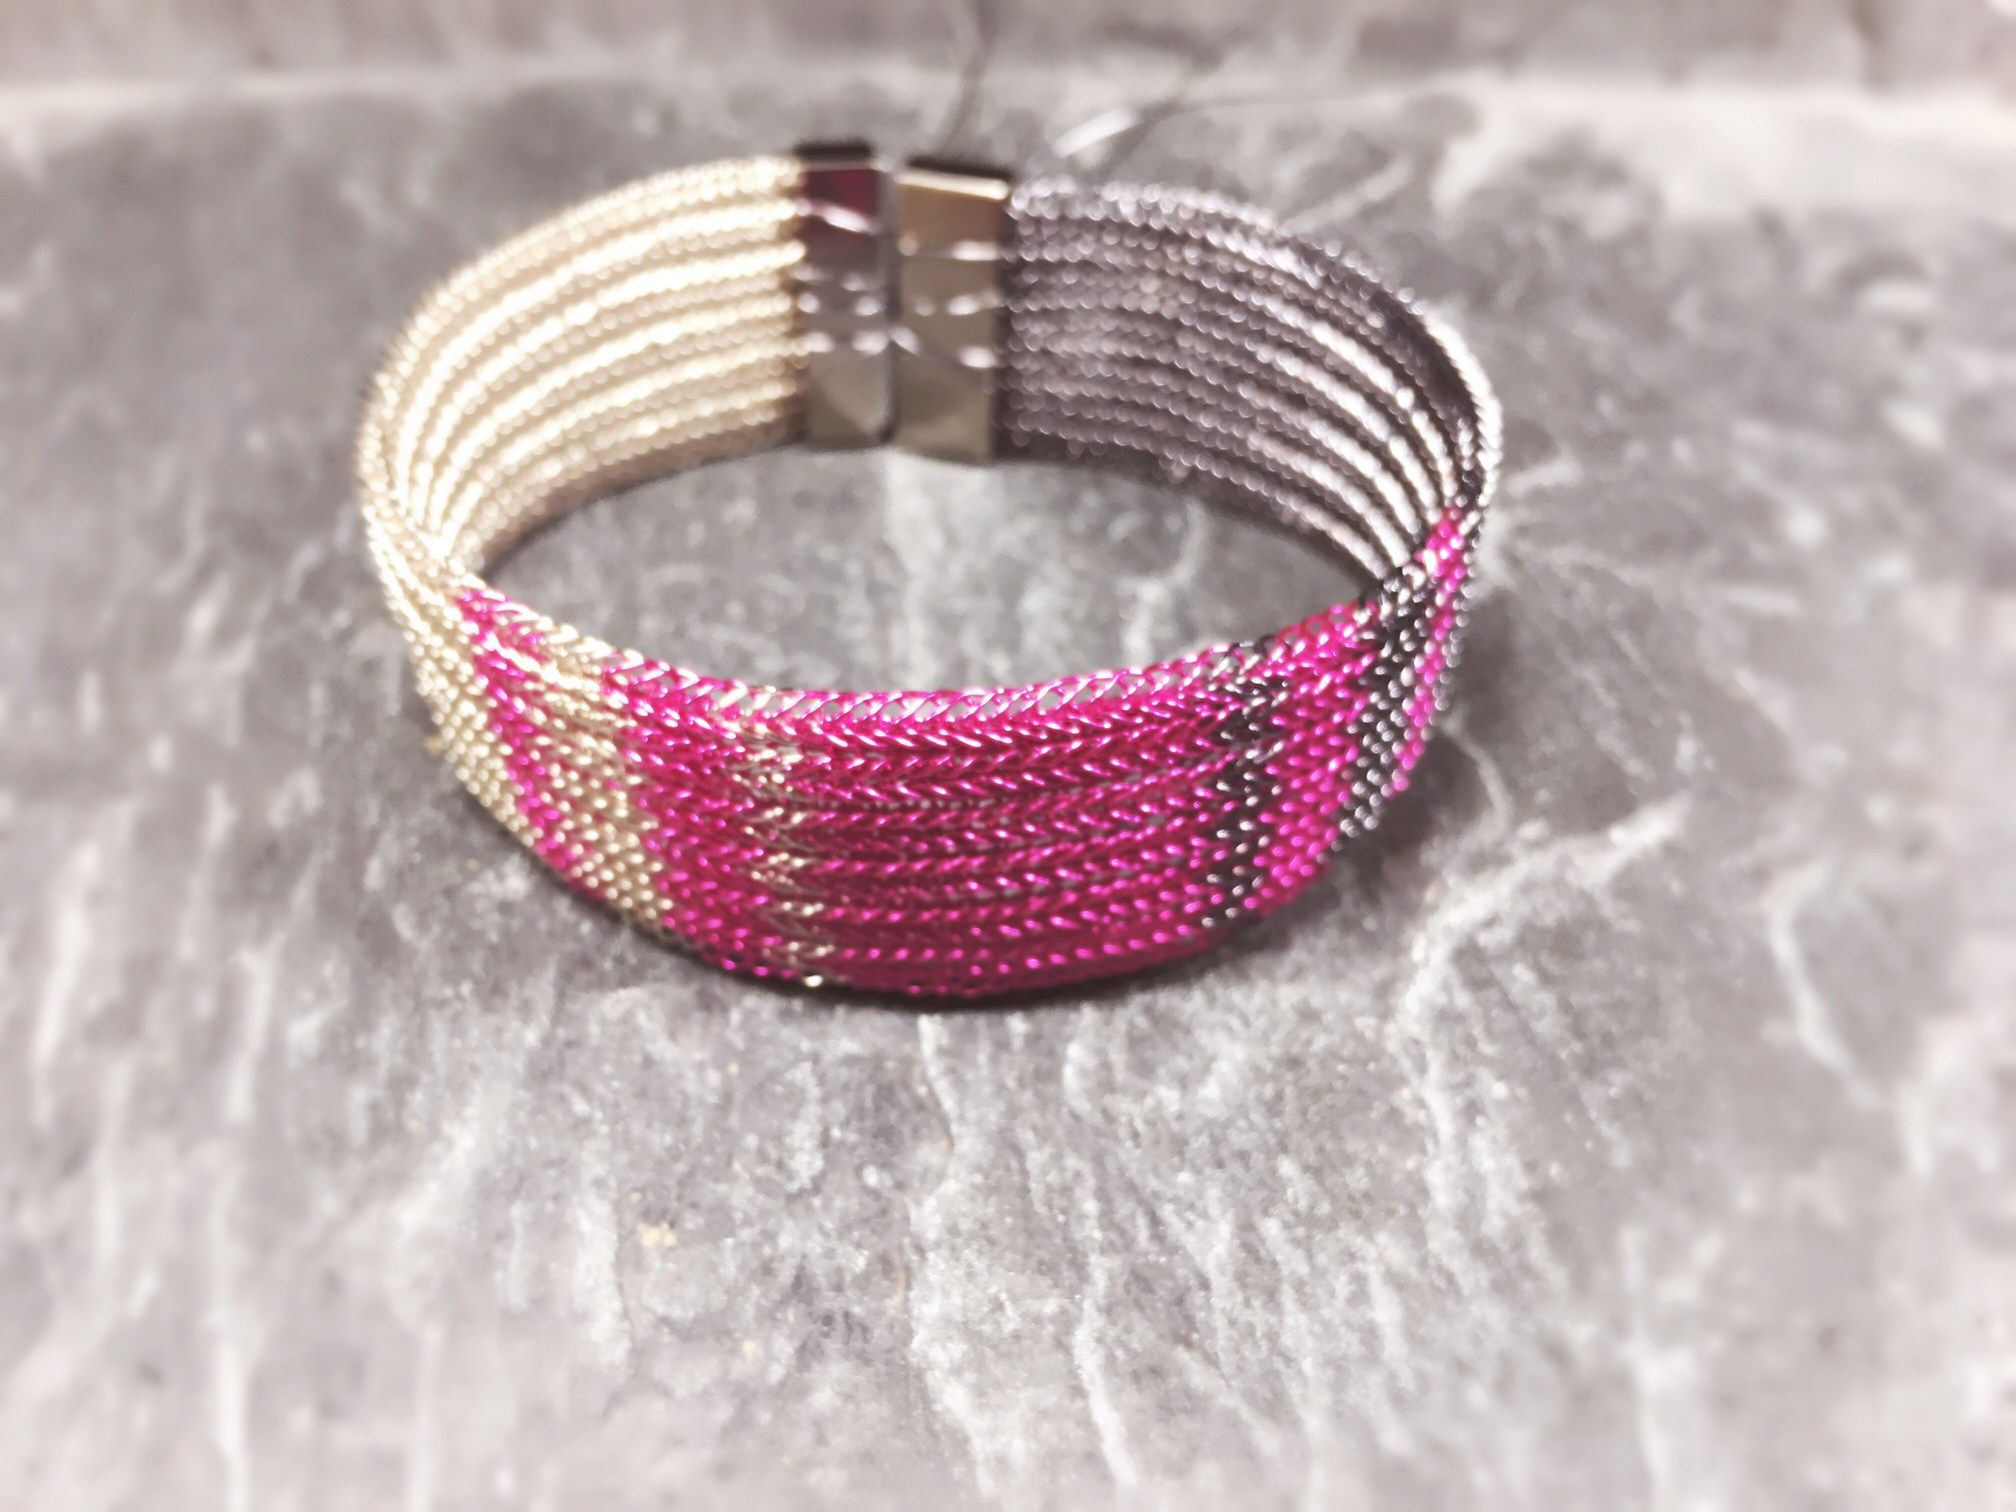 Armband tricolor graphit-pink-silber | Schmuck | Pinterest | Draht ...